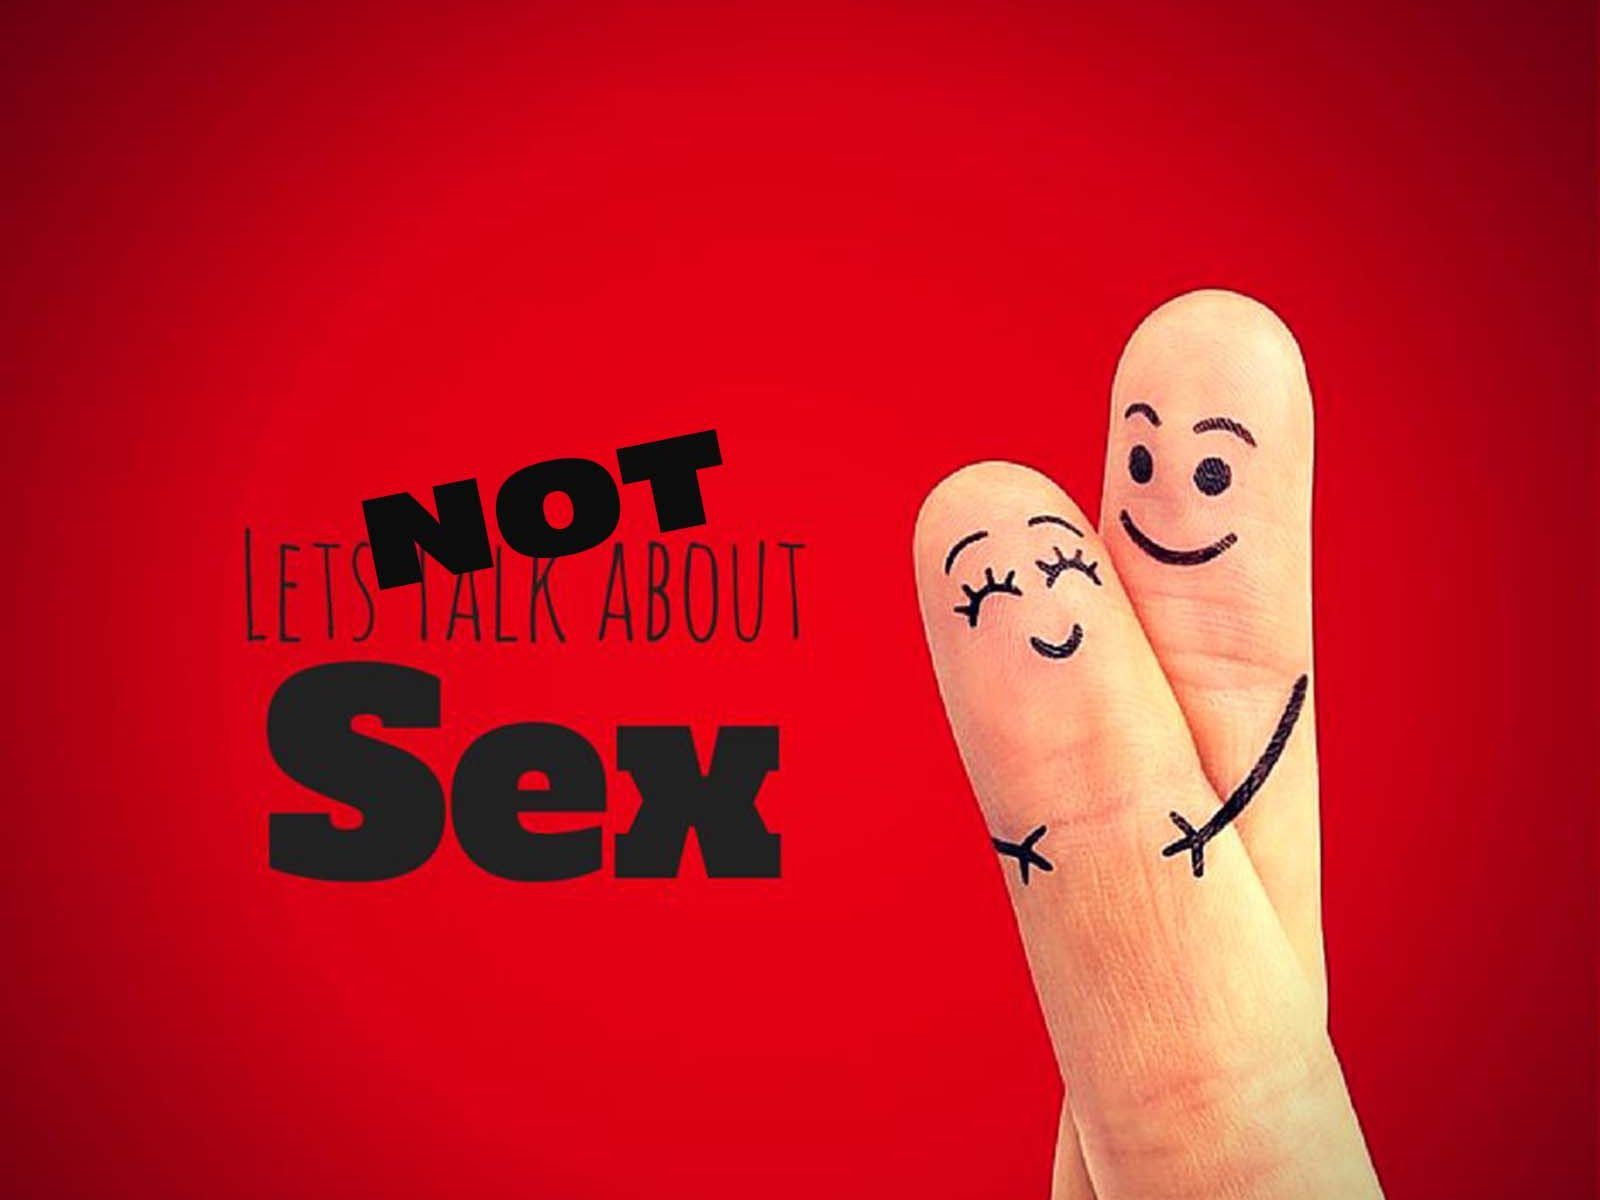 lets-not-talk-about-sex